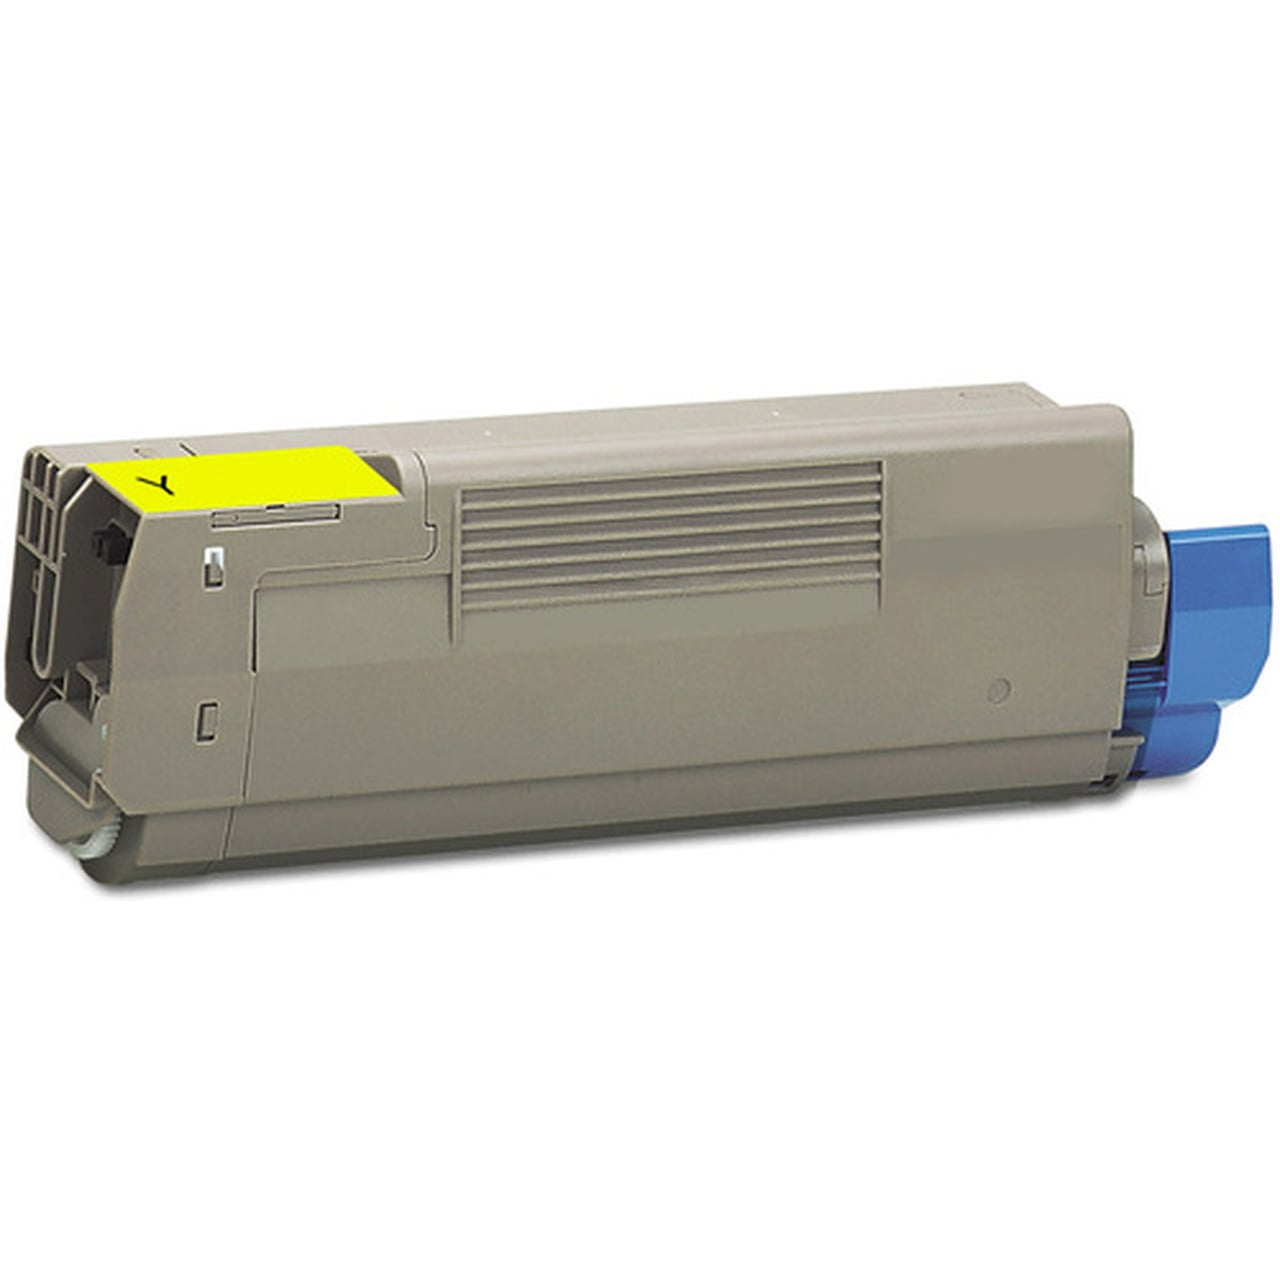 43324417 Toner Cartridge - Okidata Compatible (Yellow)